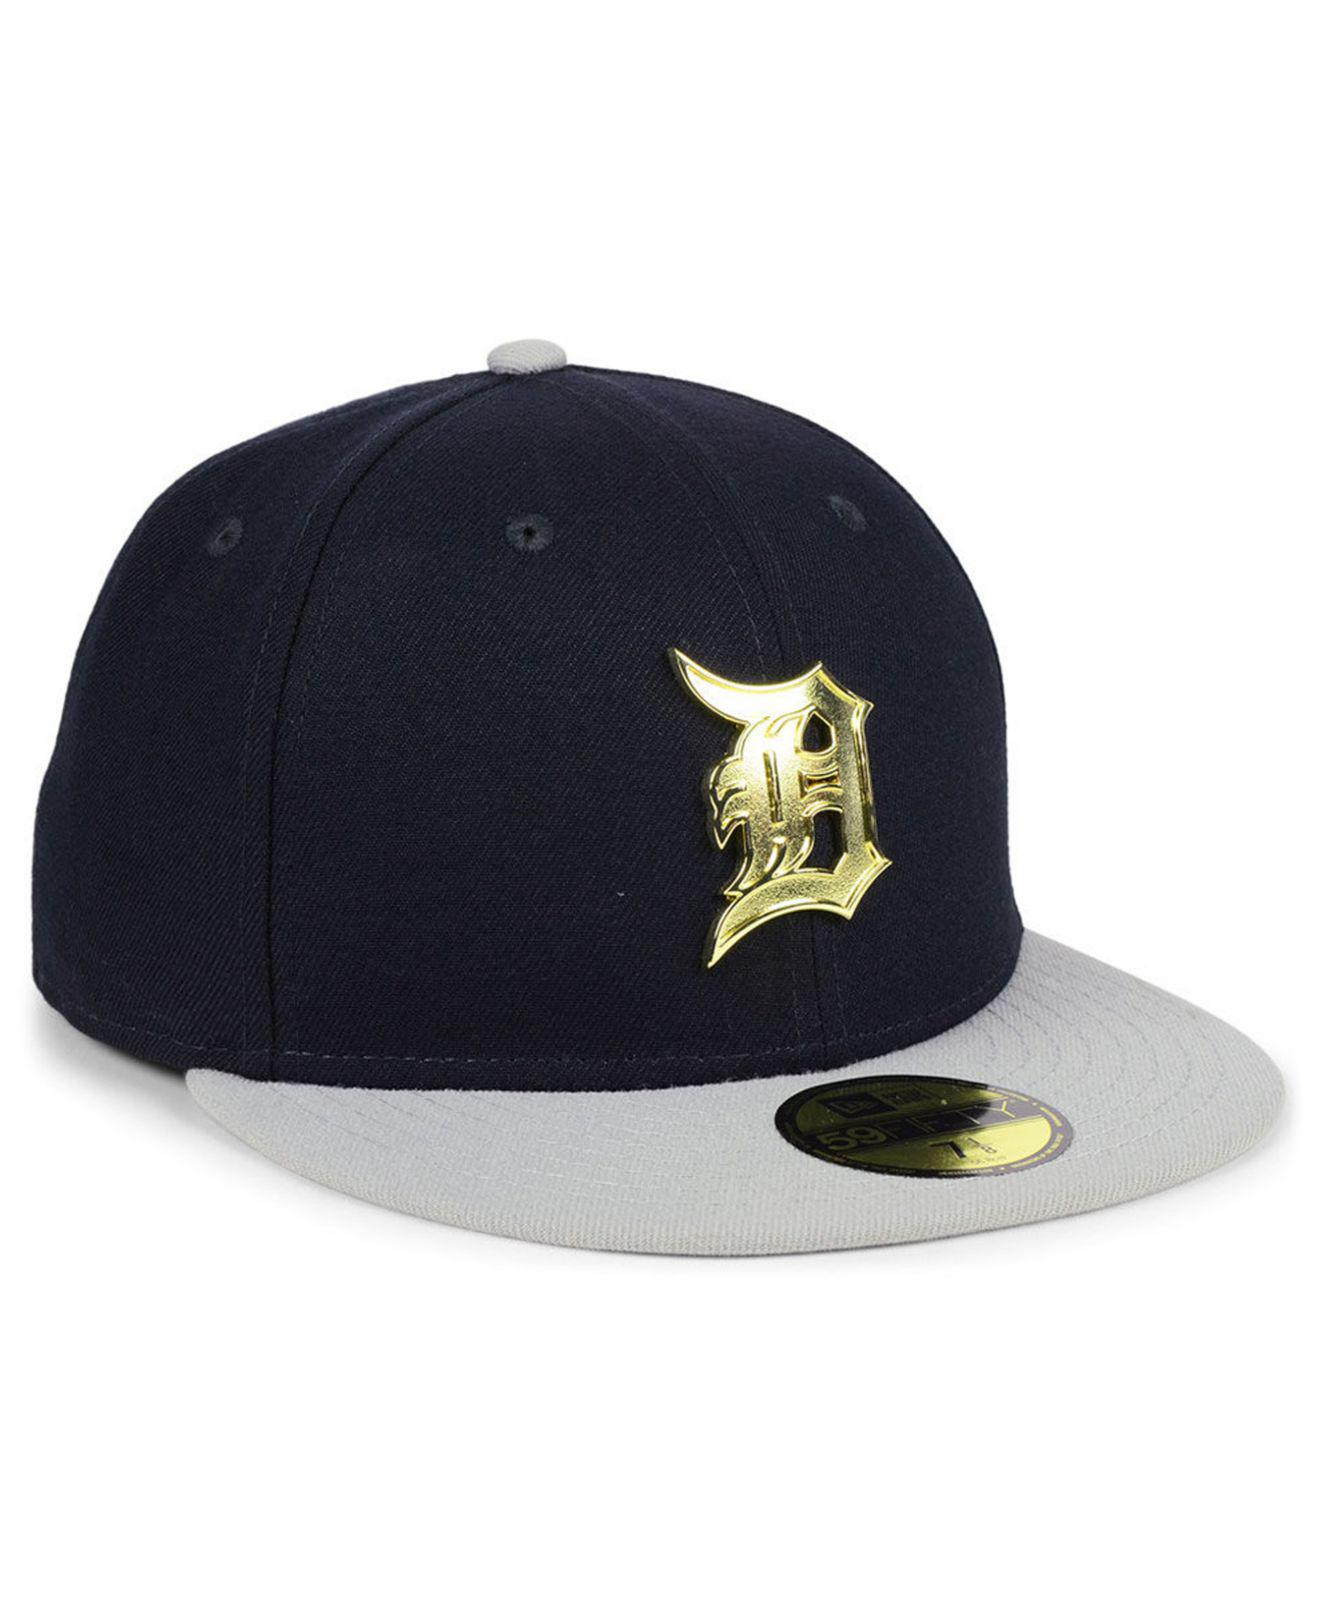 more photos 6259a 99c03 ... coupon for detroit tigers golden finish 59fifty fitted cap for men lyst.  view fullscreen 4547d